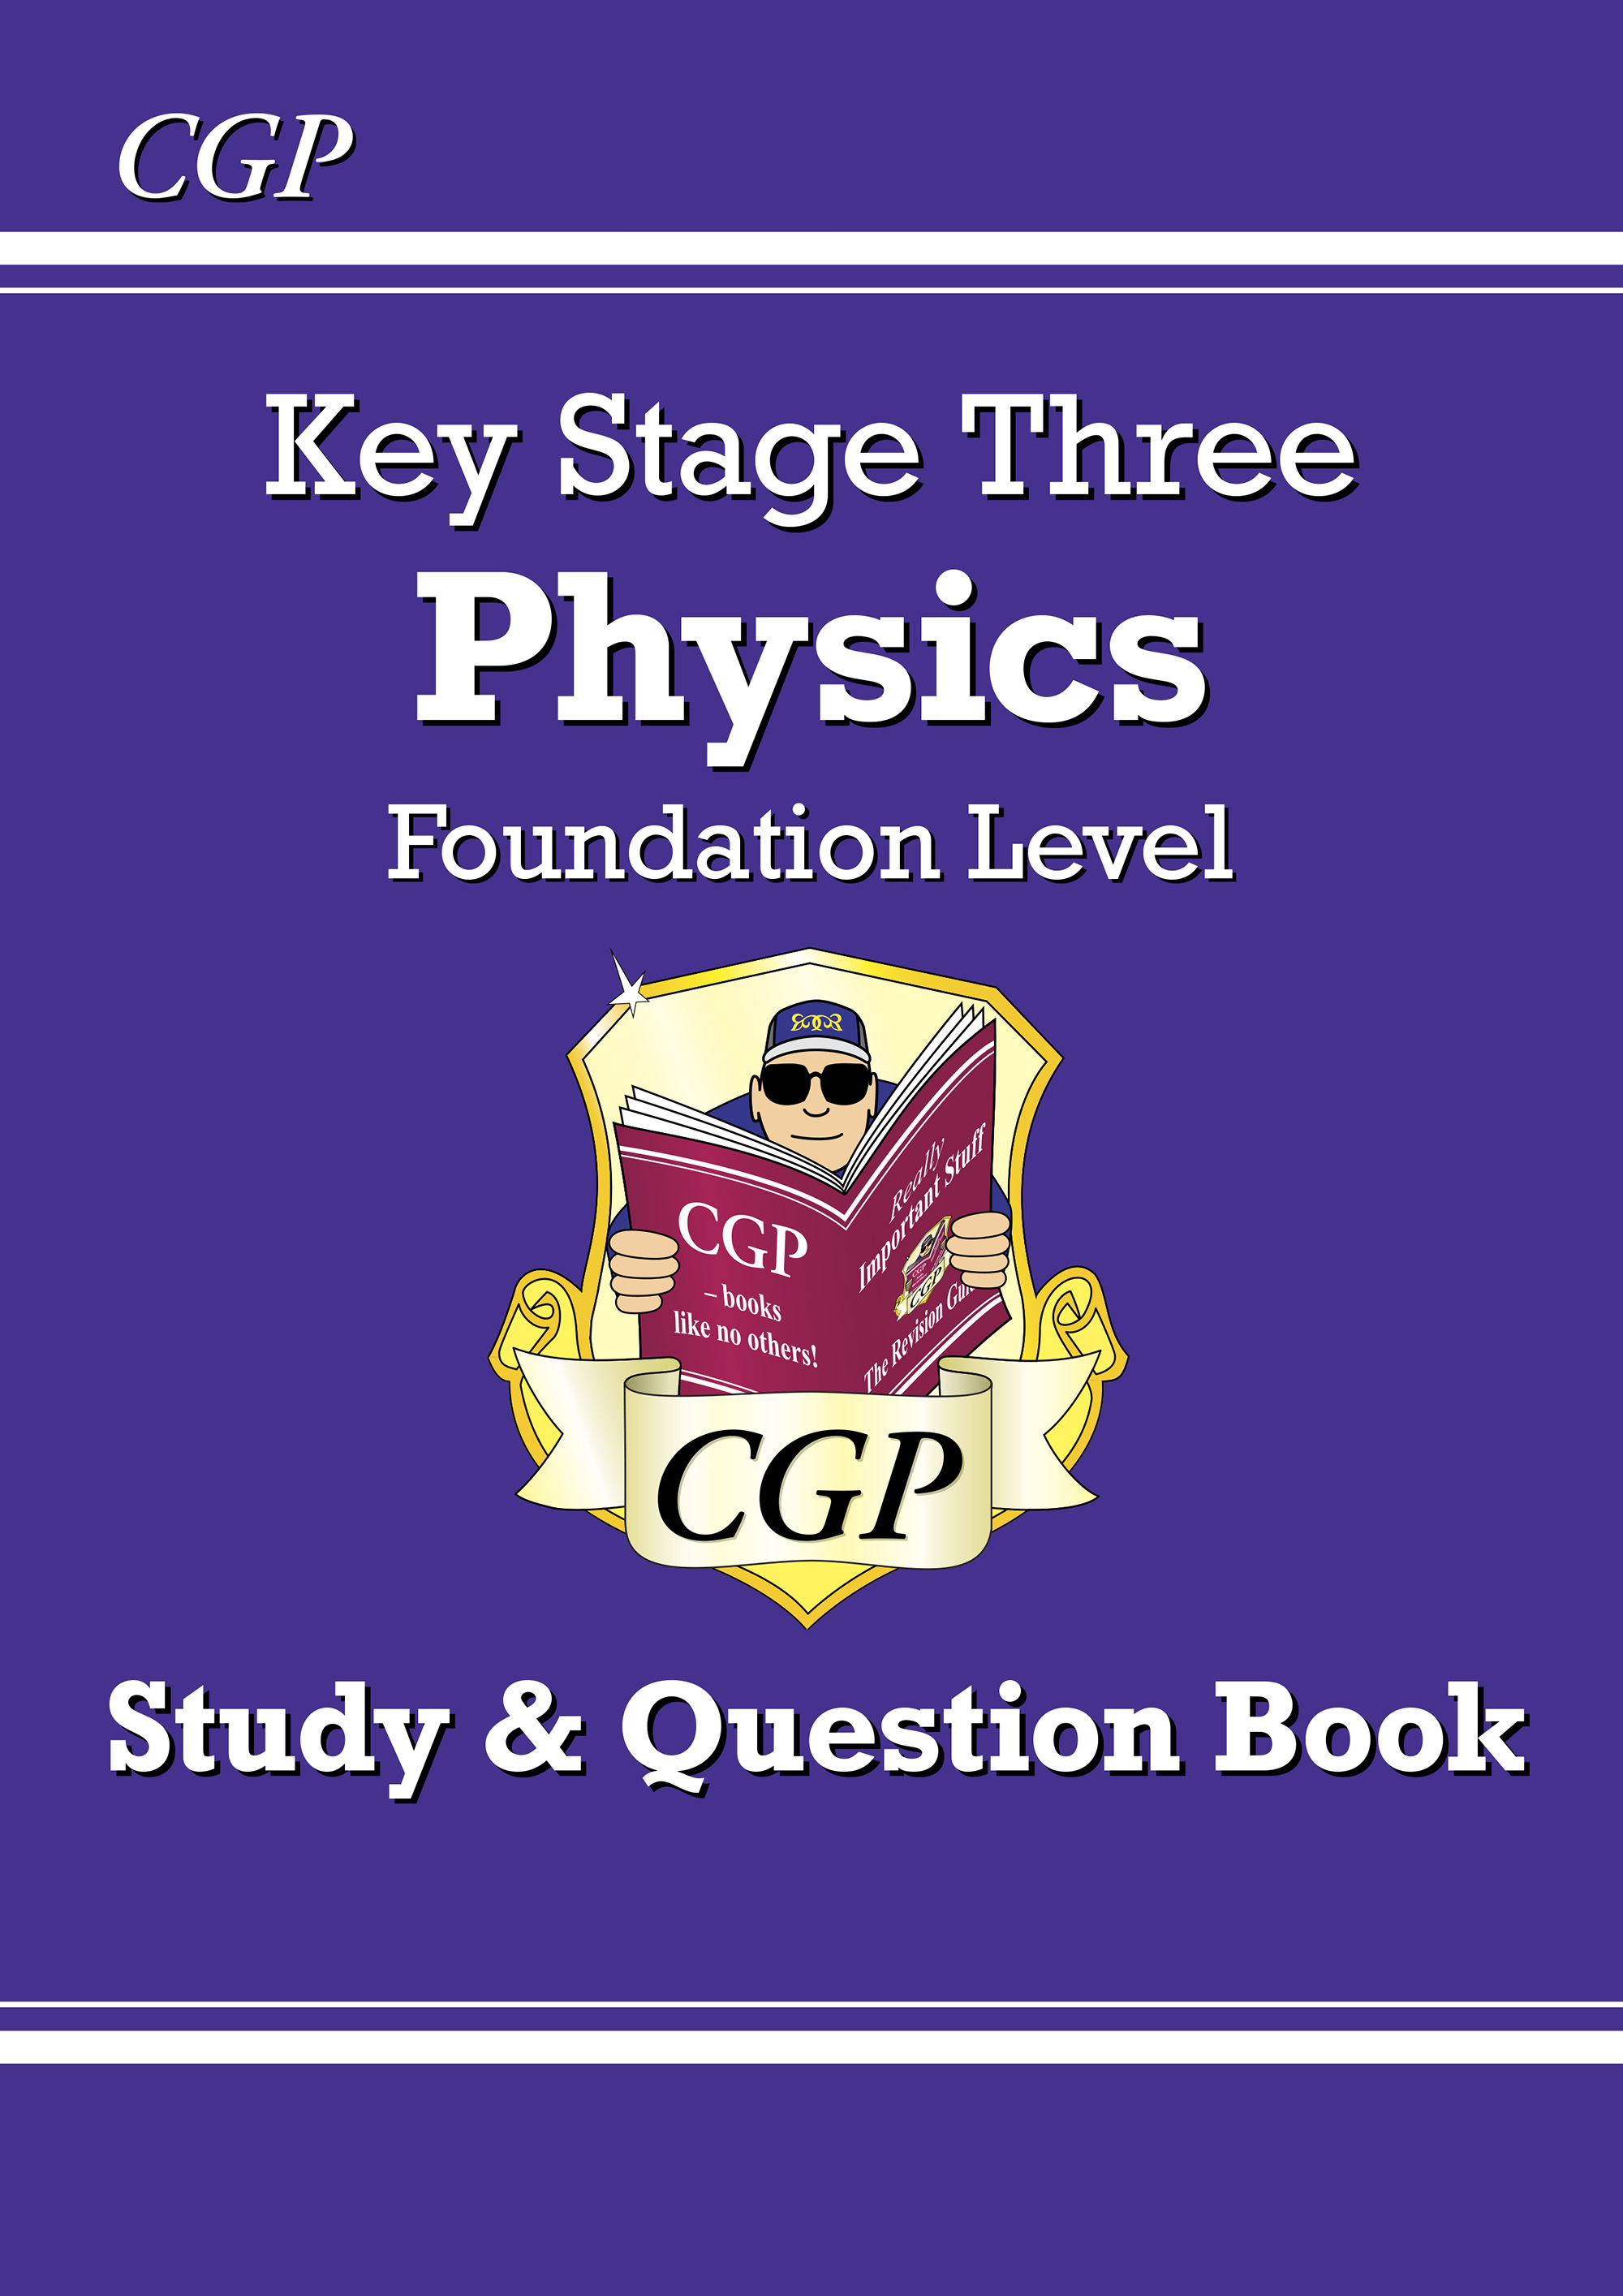 PFQ32DK - KS3 Physics Study & Question Book - Foundation